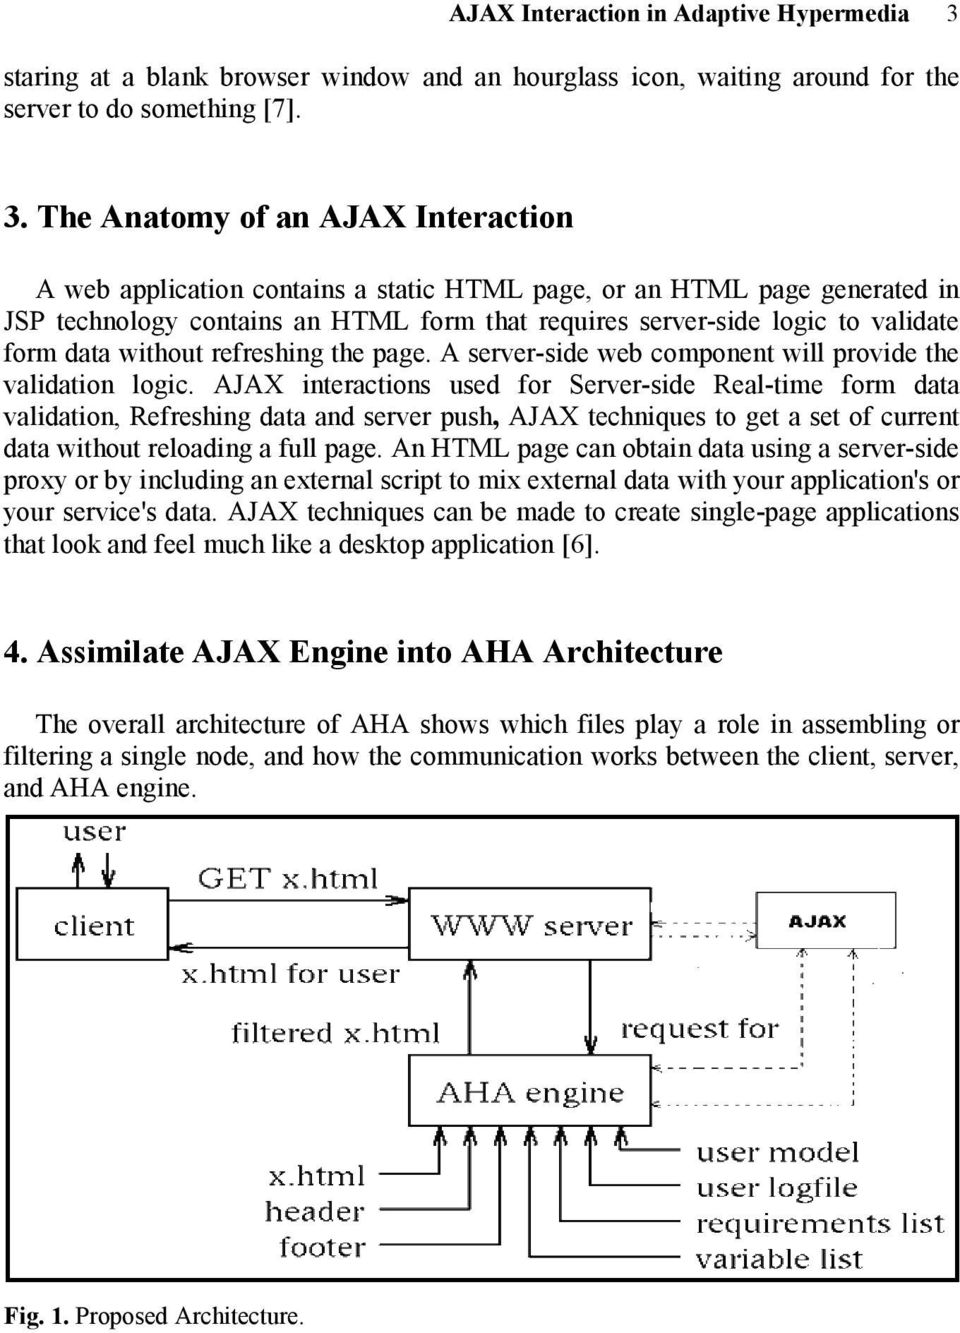 The Anatomy of an AJAX Interaction A web application contains a static HTML page, or an HTML page generated in JSP technology contains an HTML form that requires server-side logic to validate form